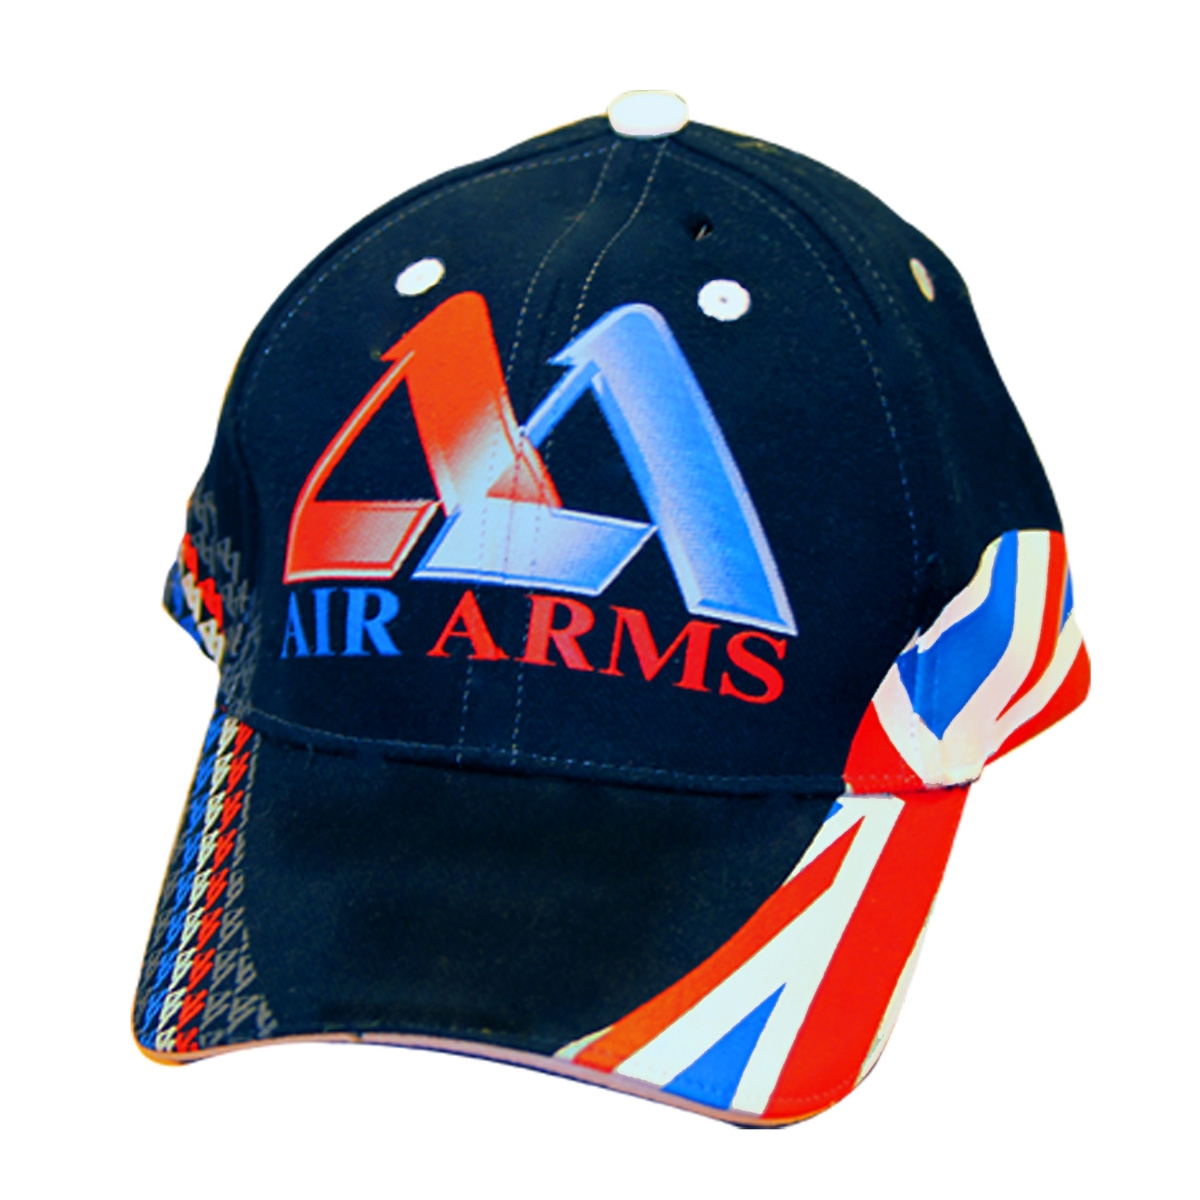 Image of Air Arms Baseball Cap deb9f219d36